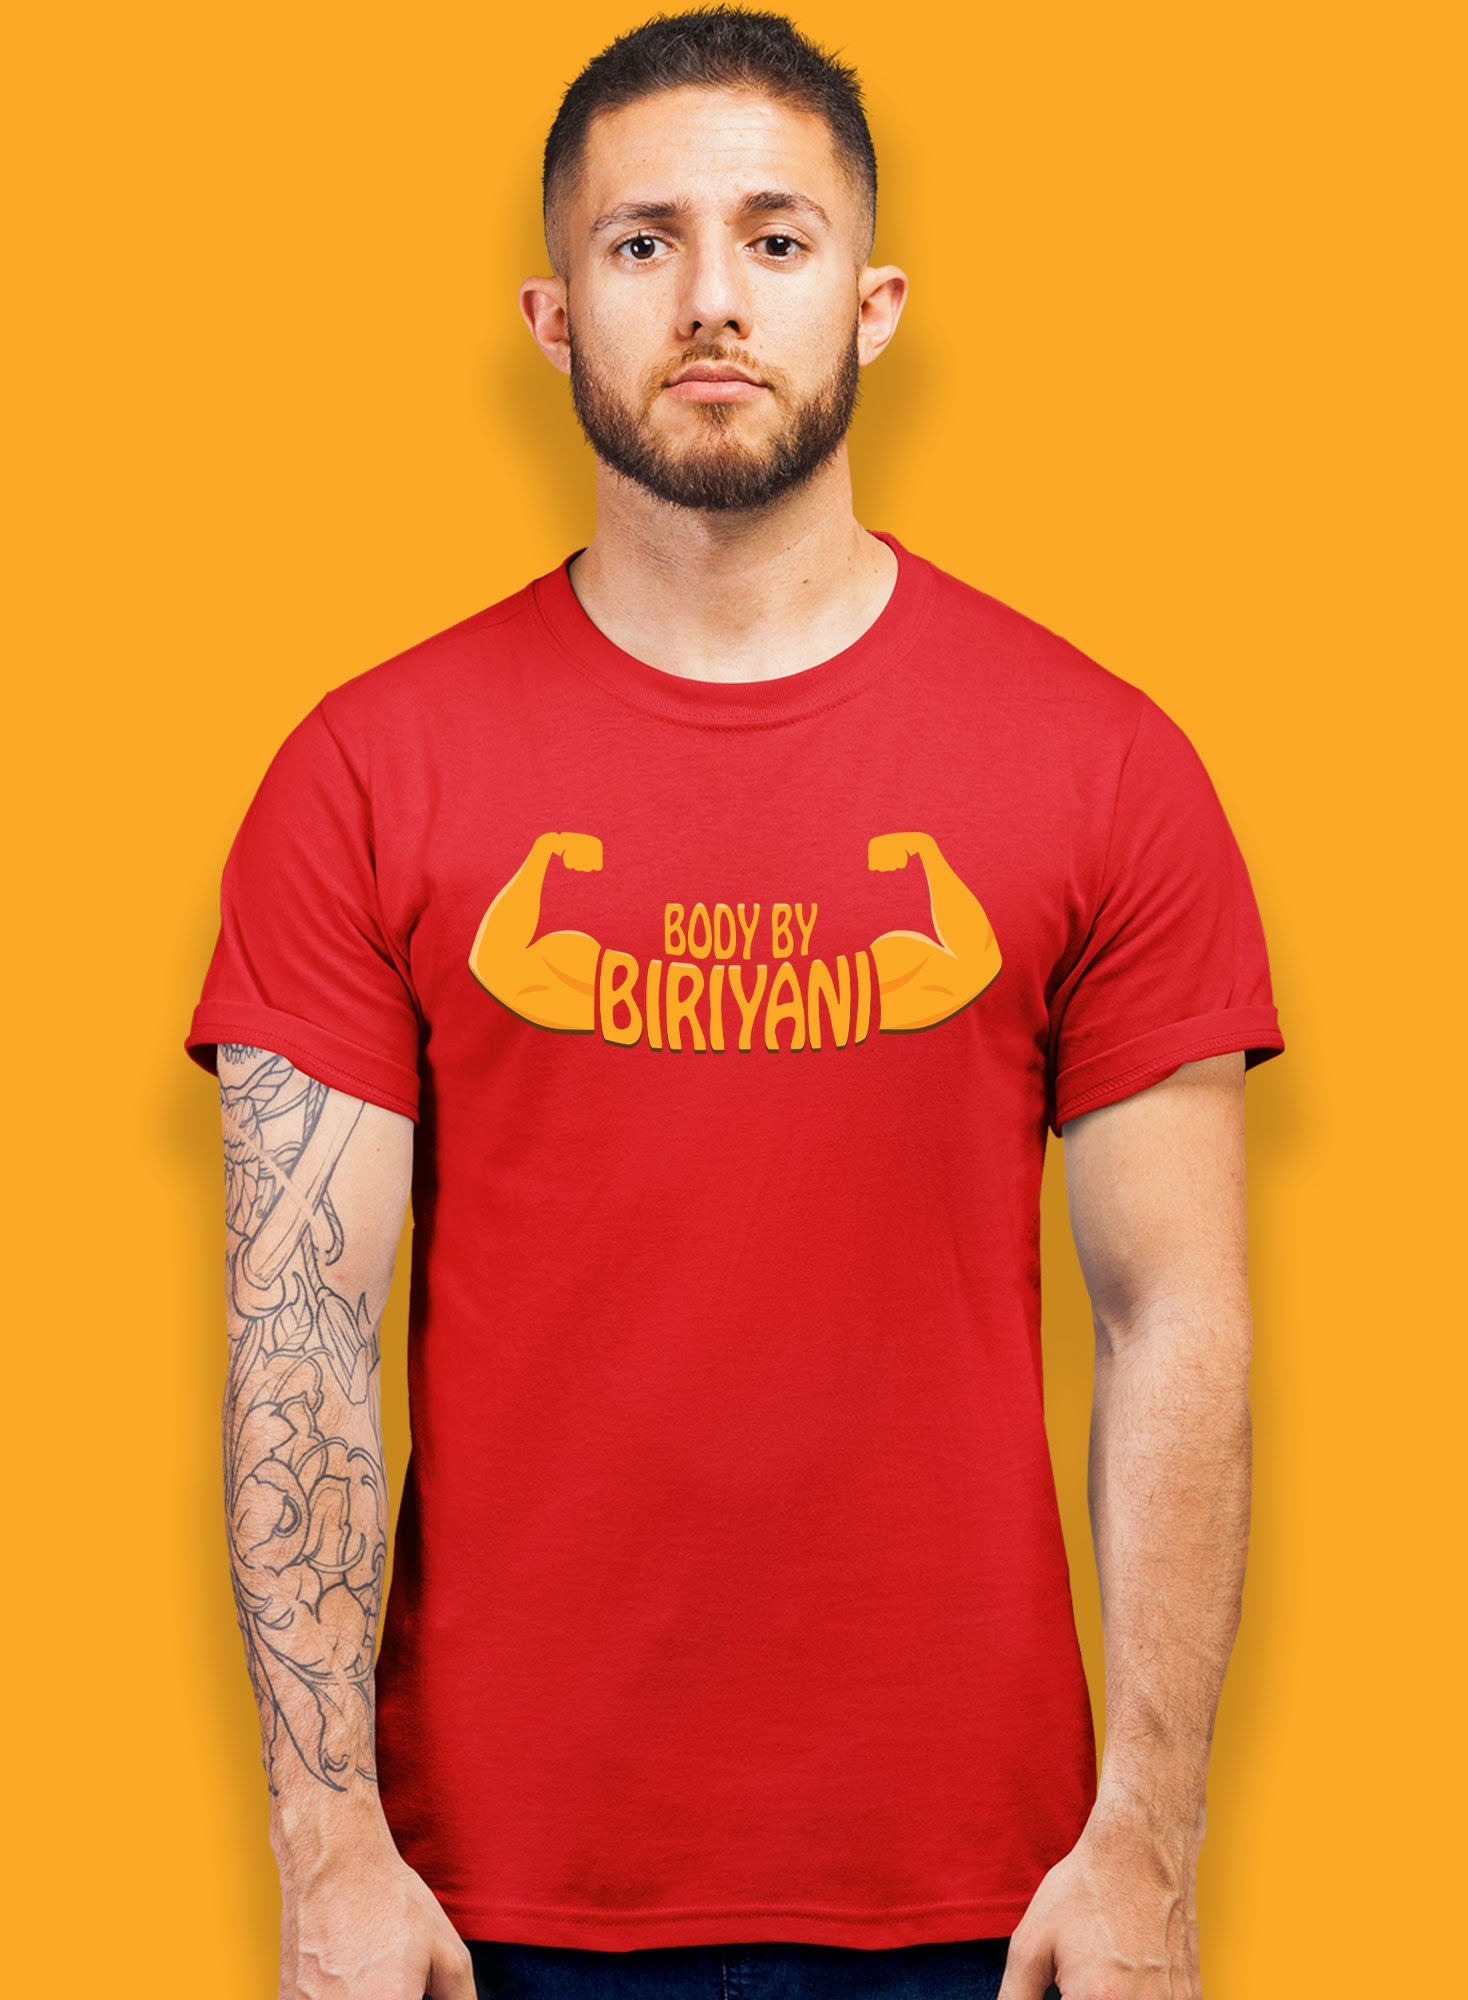 Body By Biriyani T-shirts